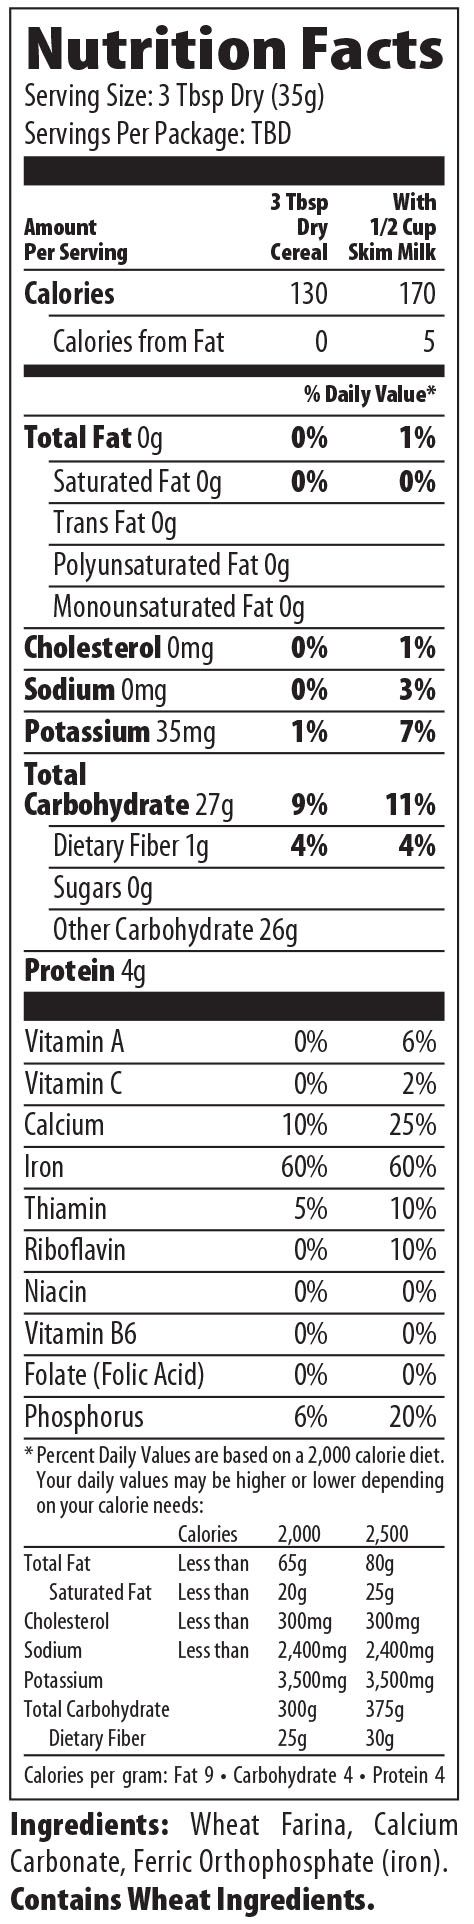 Nutrition Facts For Creamy Hot Wheat Hot Cereal By Malt O